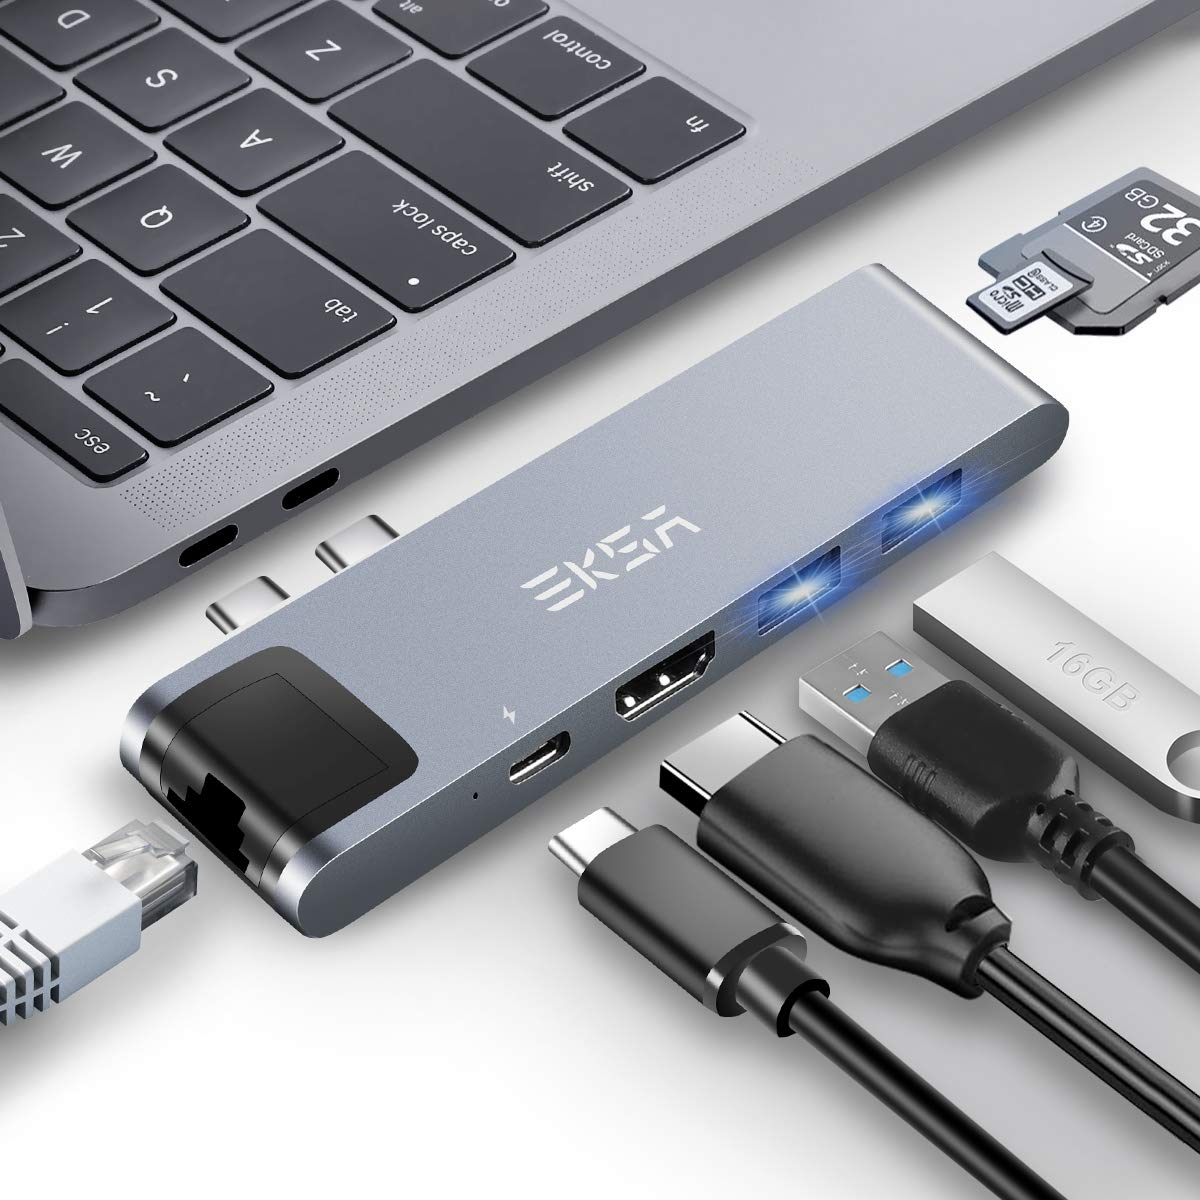 Thunderbolt 3 hub, EKSA 7 in 1 Dual USB C Hub for MacBook Pro 2016/2017/2018 13'' and 15'', MacBook Air 2018 Adapter with 4K USB C to HDMI, 100W Power Delivery, Ethernet Port,2xUSB3.0,SD/TF Card Reader